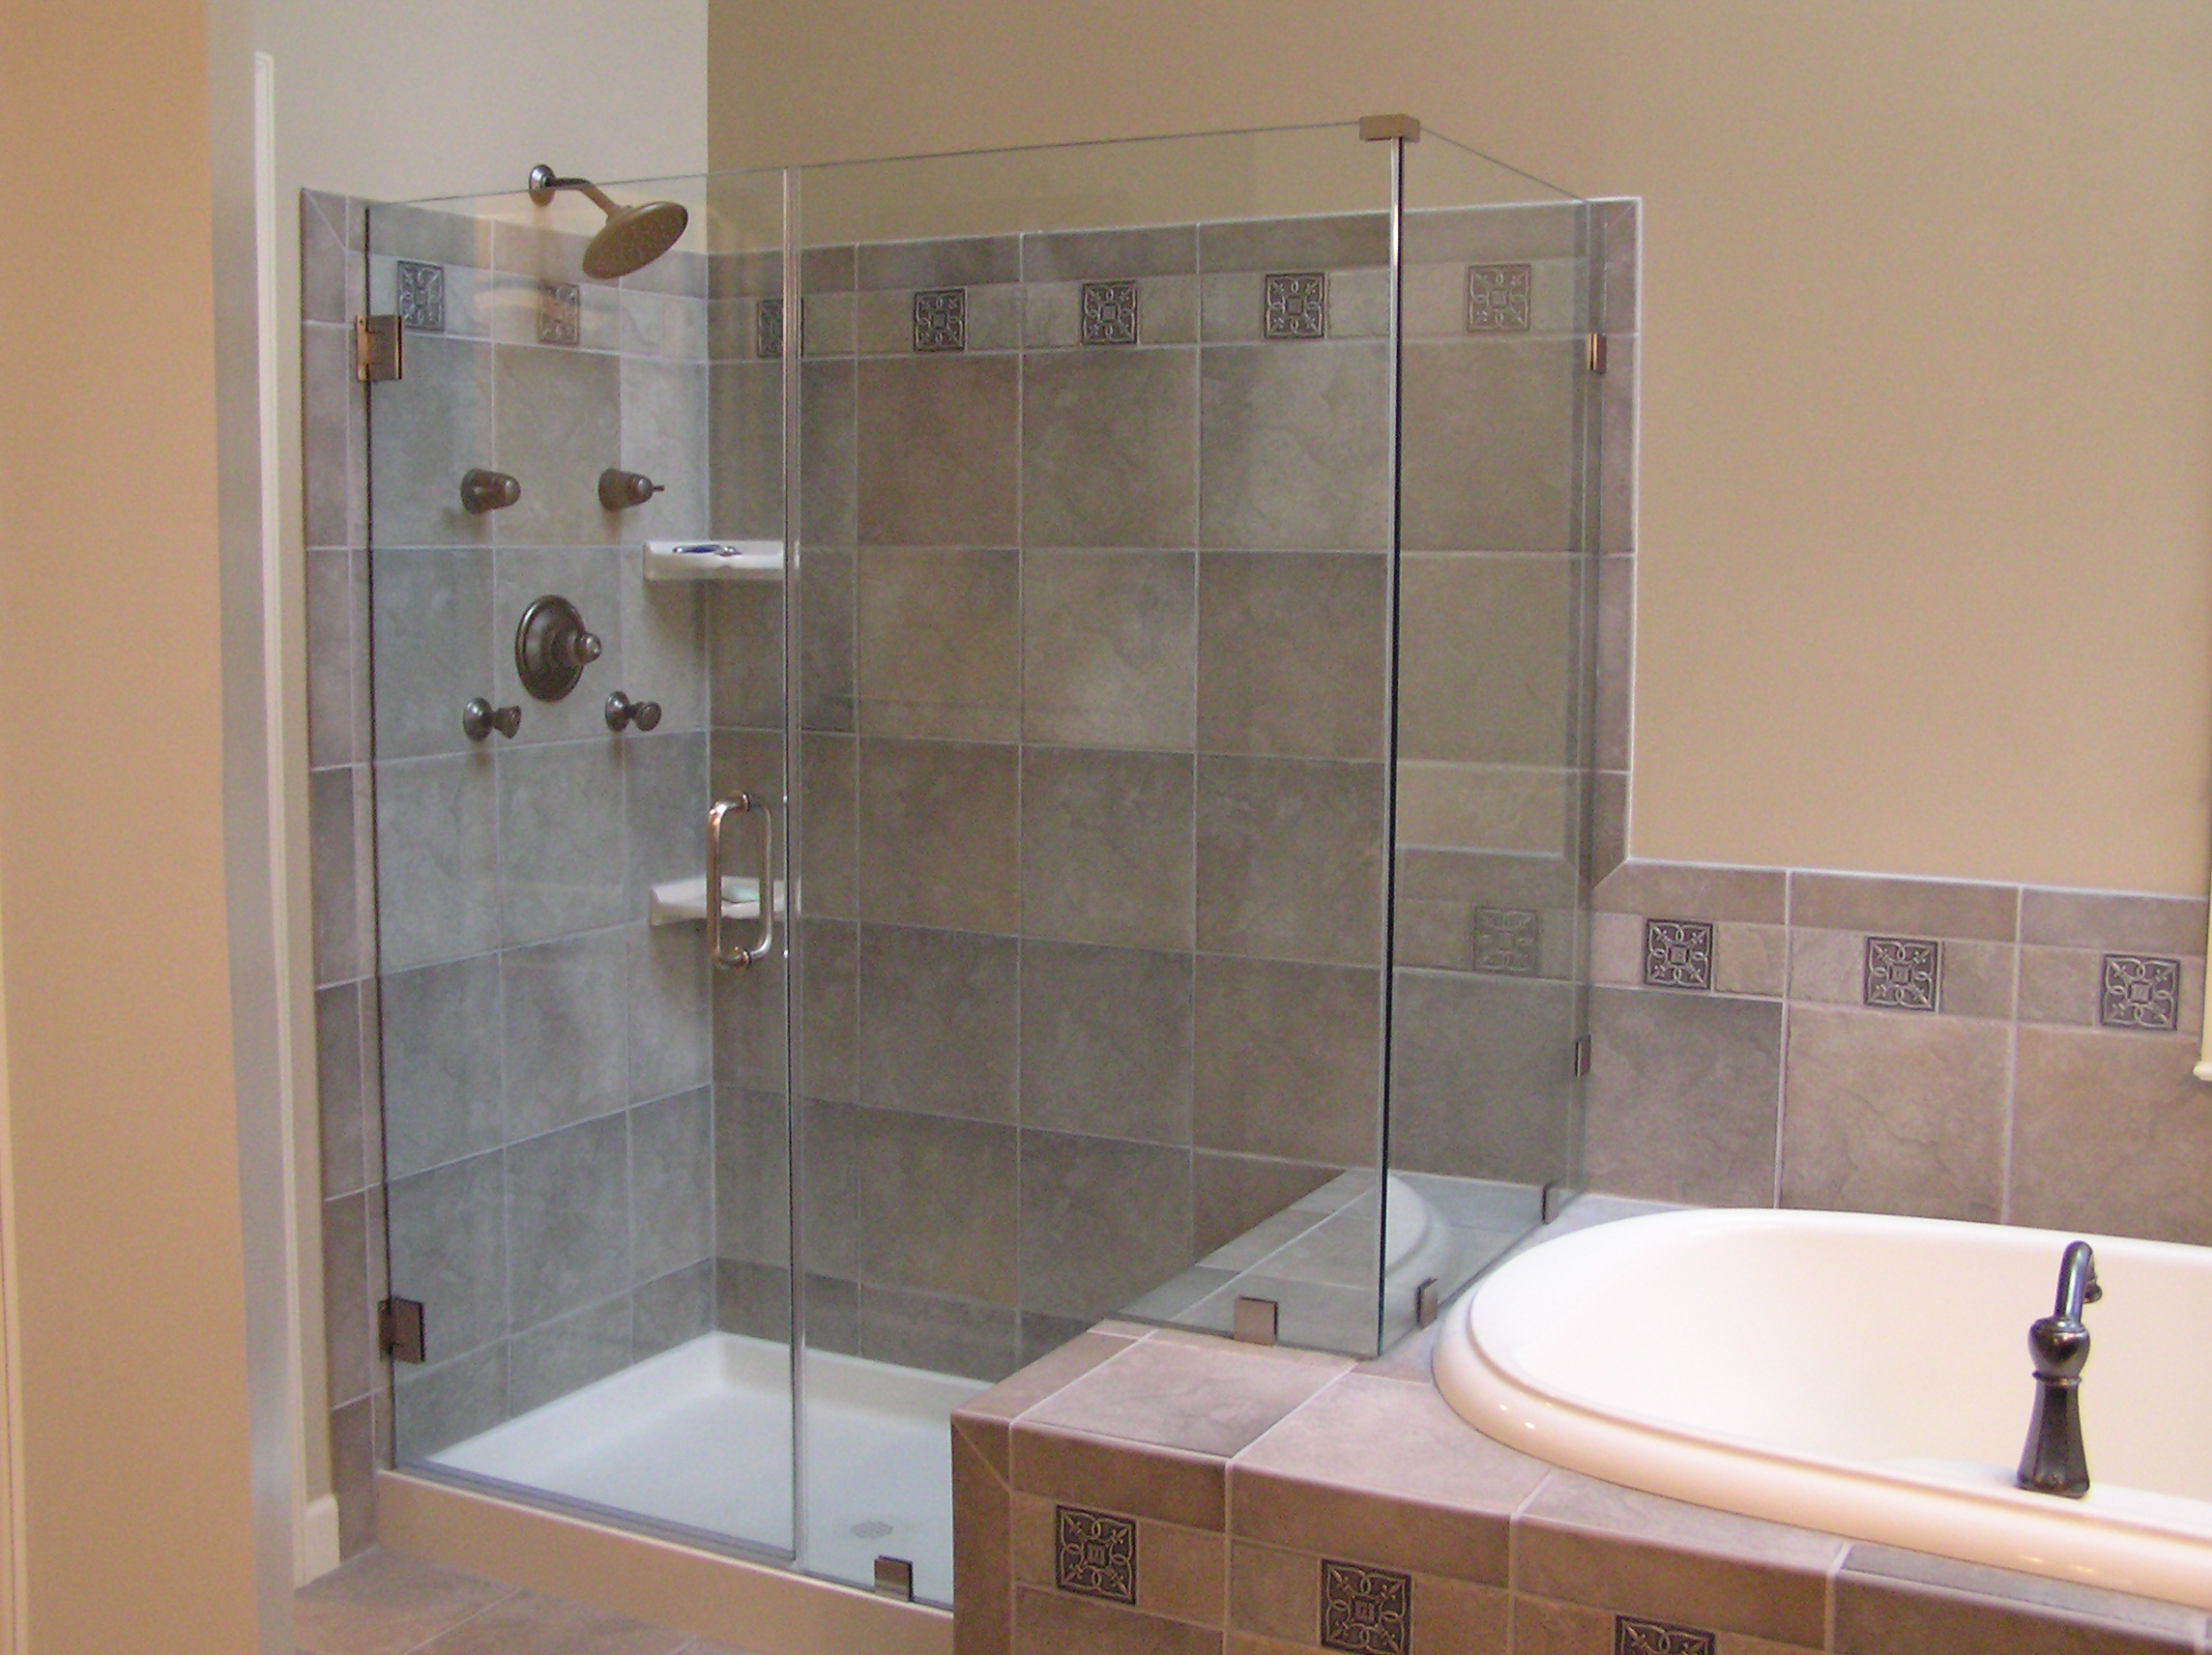 25 Best Bathroom Remodeling Ideas and Inspiration on Bathroom Remodel Design Ideas  id=74557